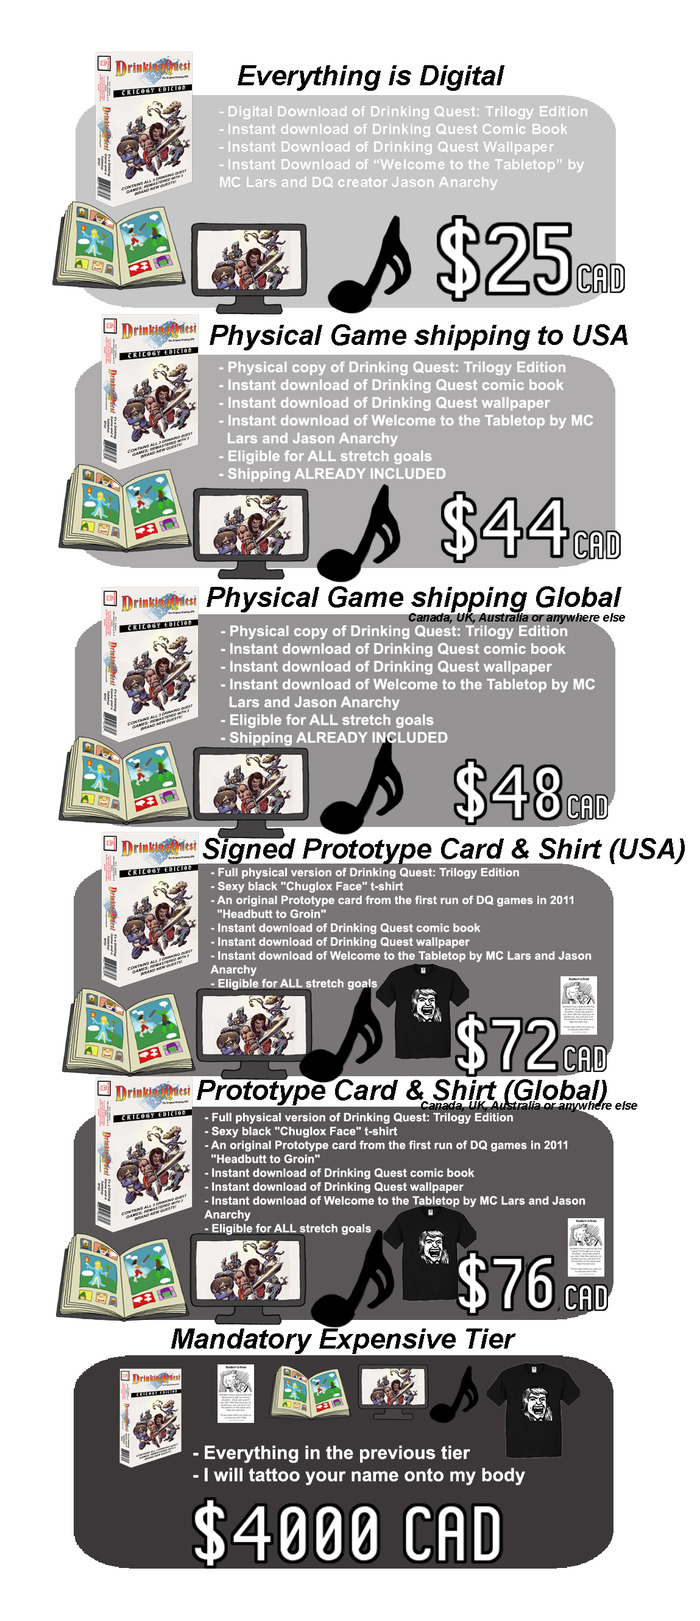 We are overkilling the value we're offering to players - you get a lot of great stuff!